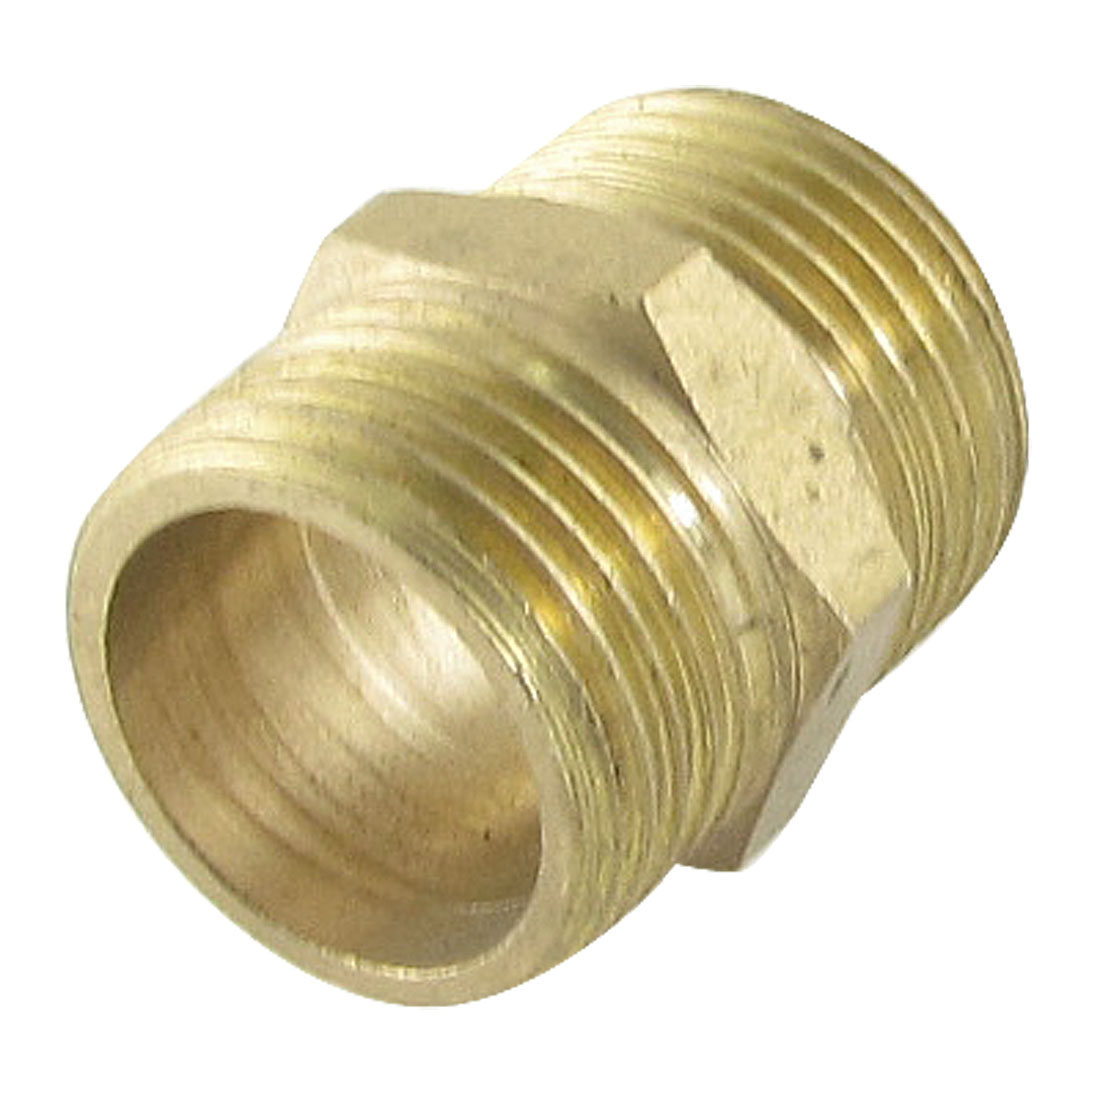 "Air Pneumatic Piping 41/64"" Male to Male Hex Nipple Equal Connector Gold Tone"